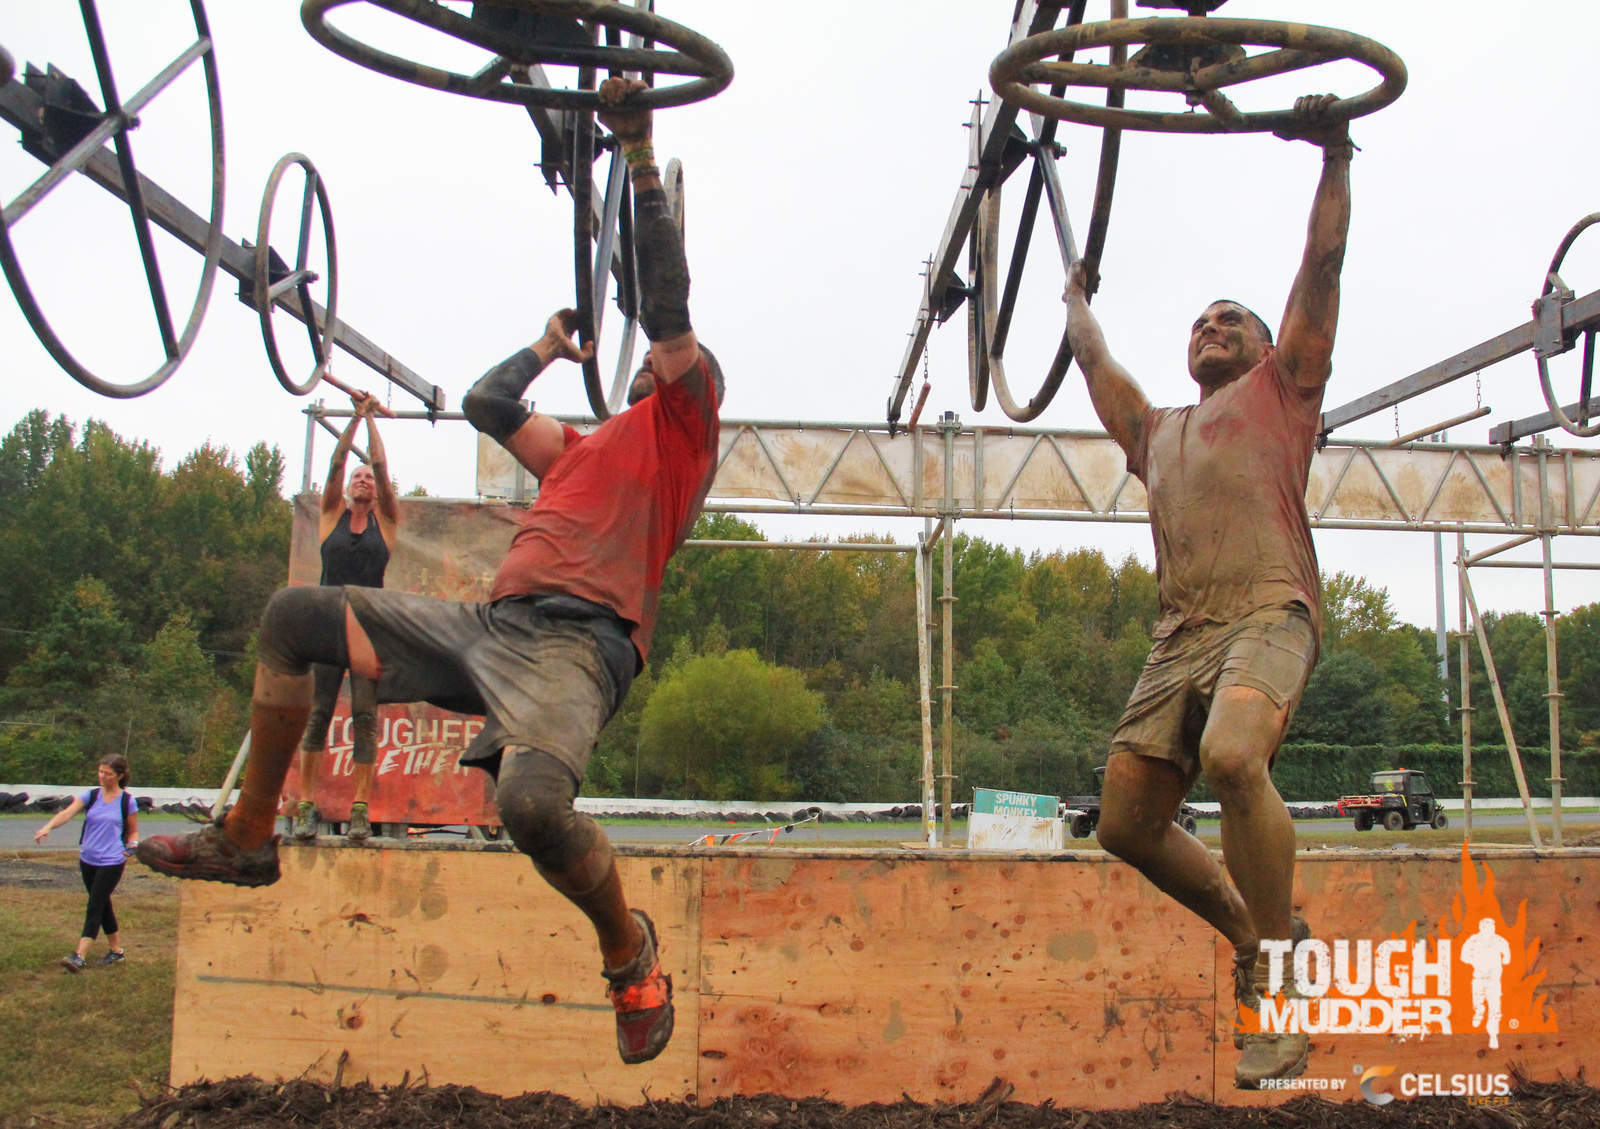 tough mudder obstacle course